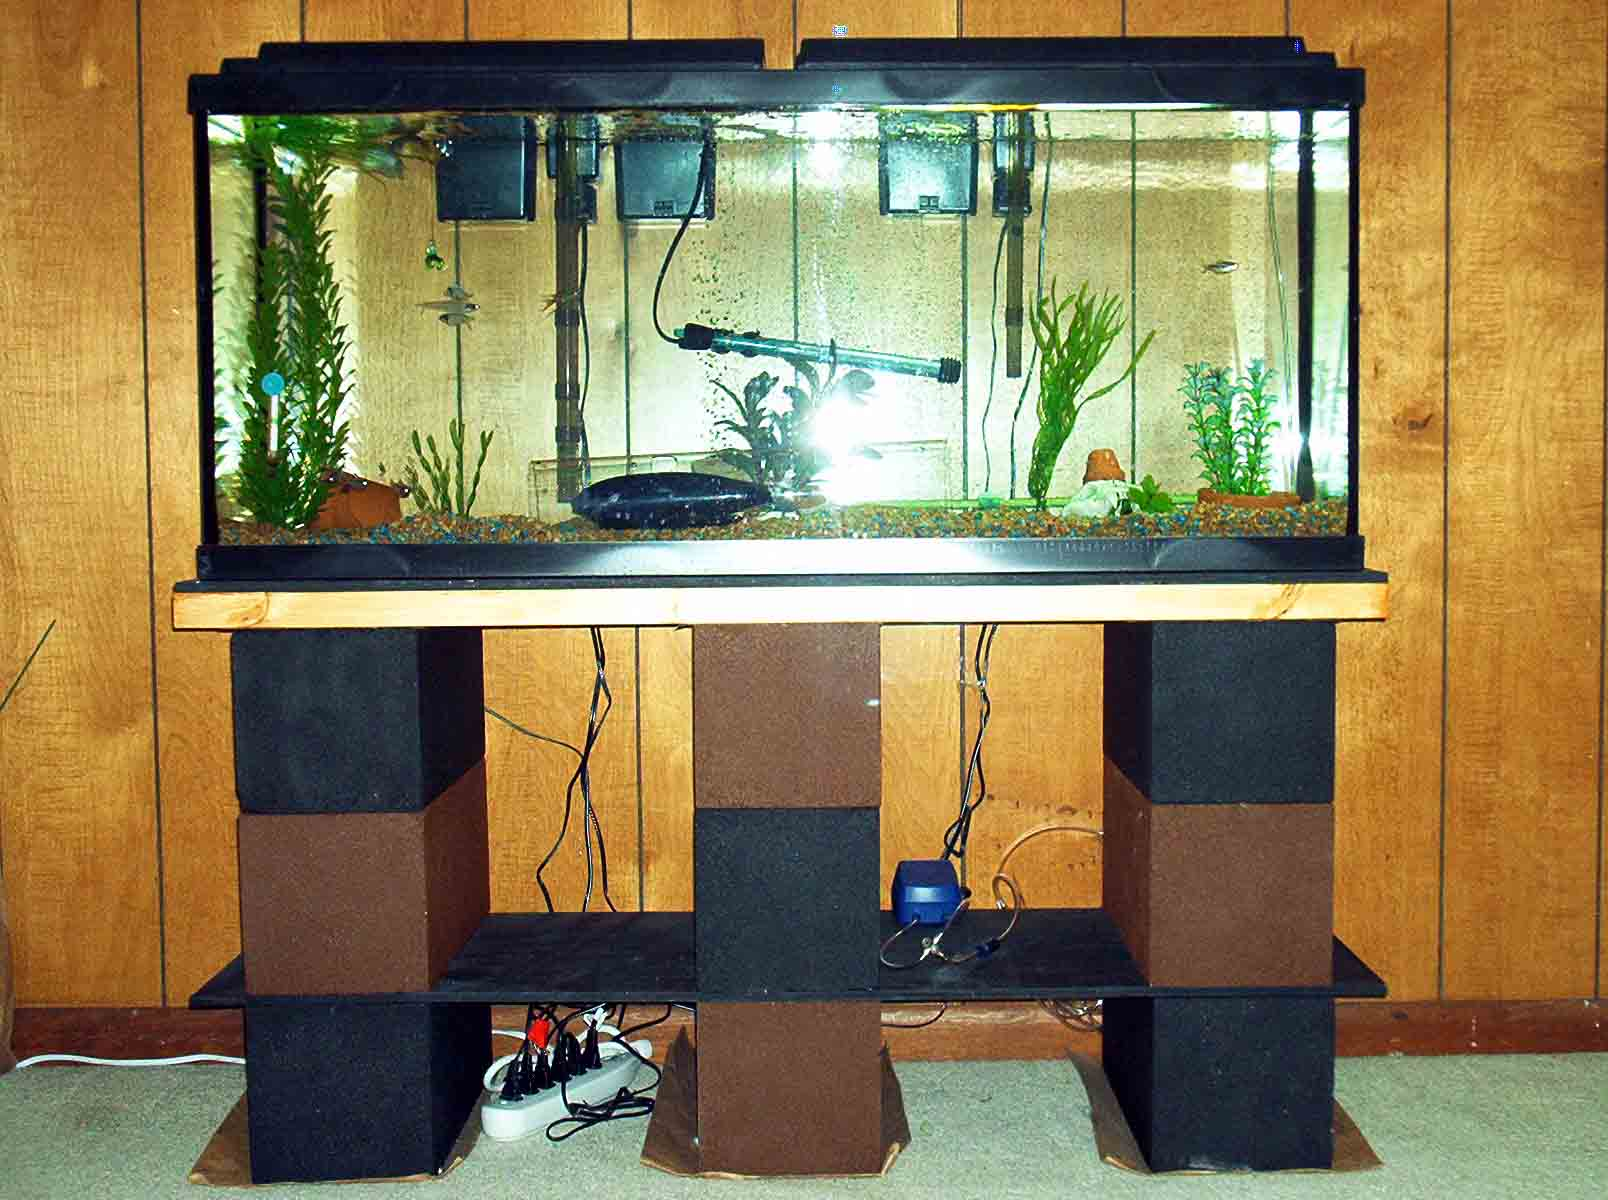 75 Gallon Aquarium Stand Design